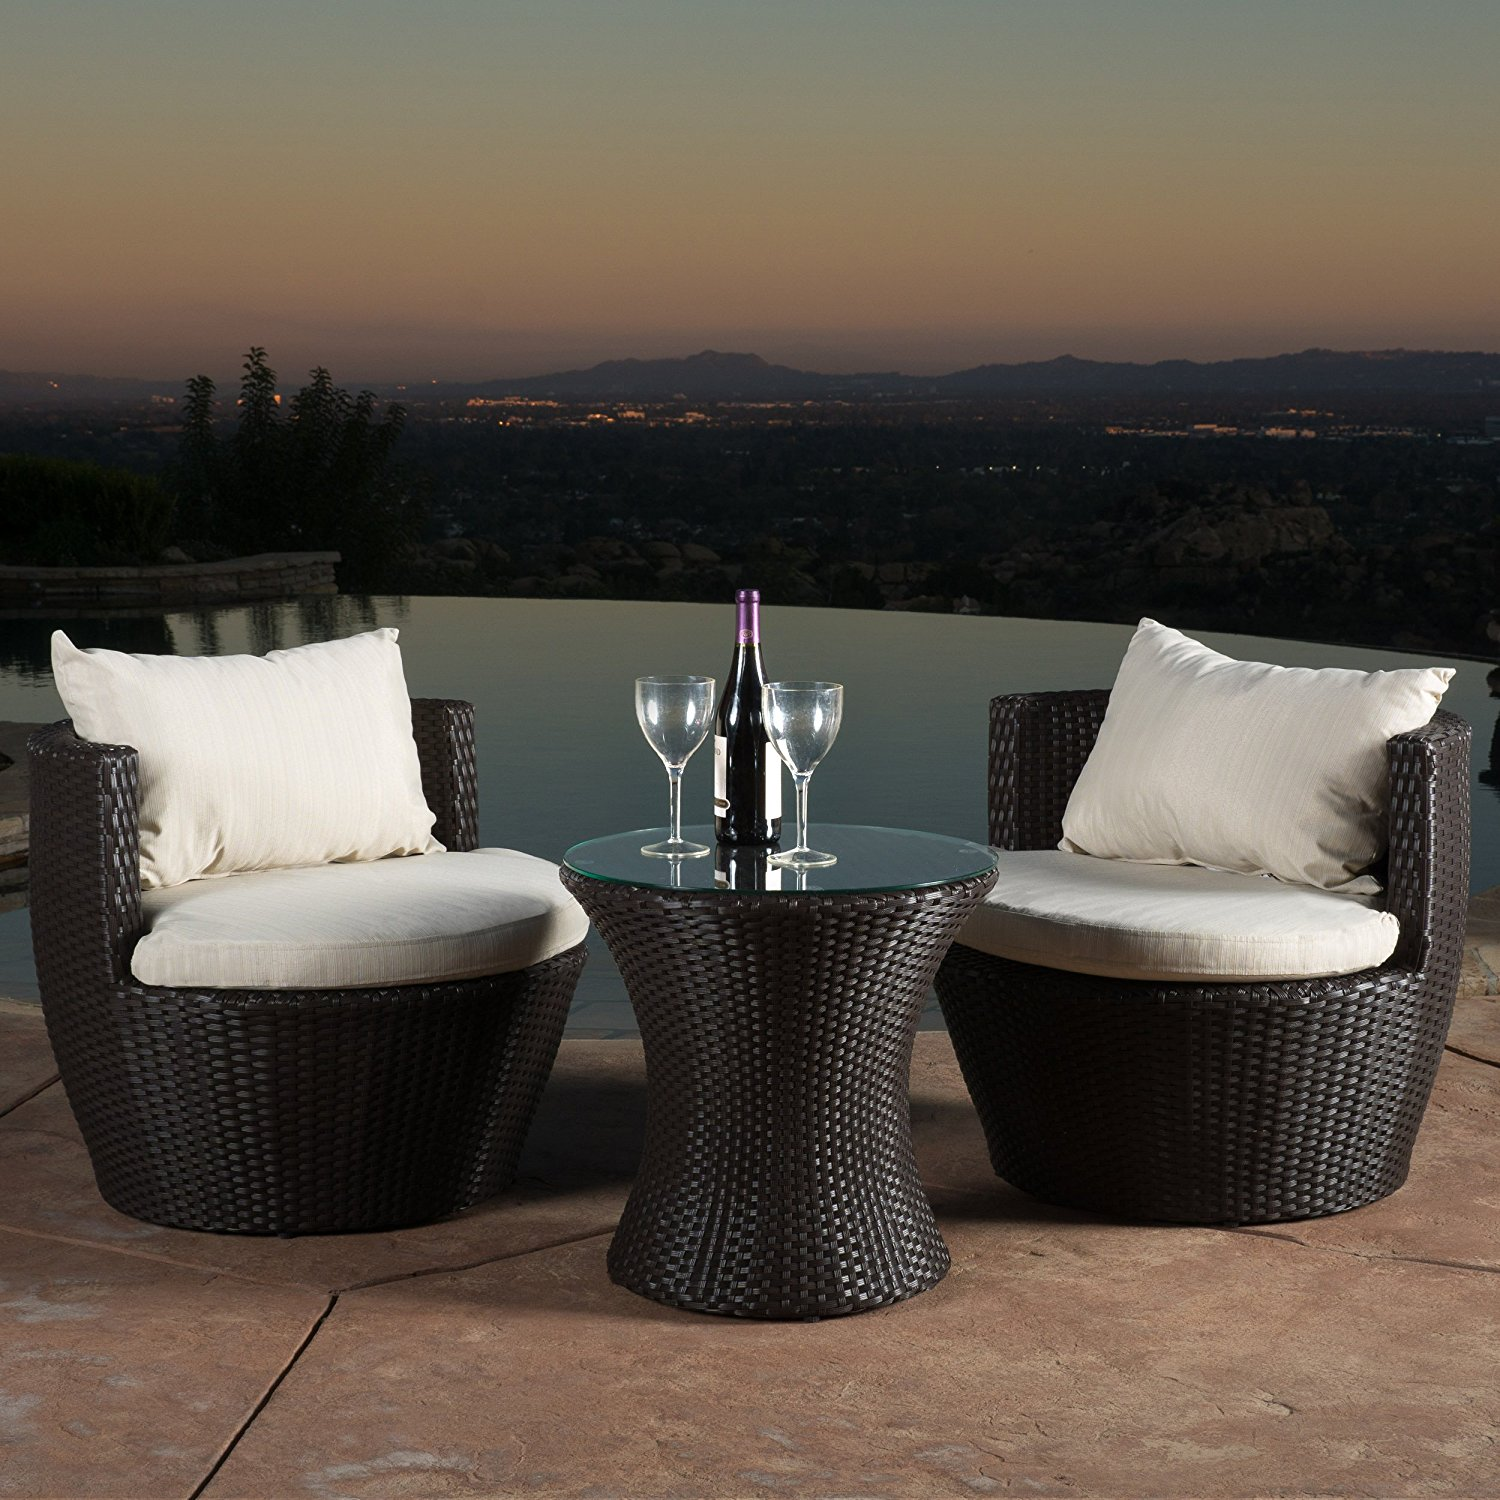 Royals Courage : wicker patio furniture - amorenlinea.org